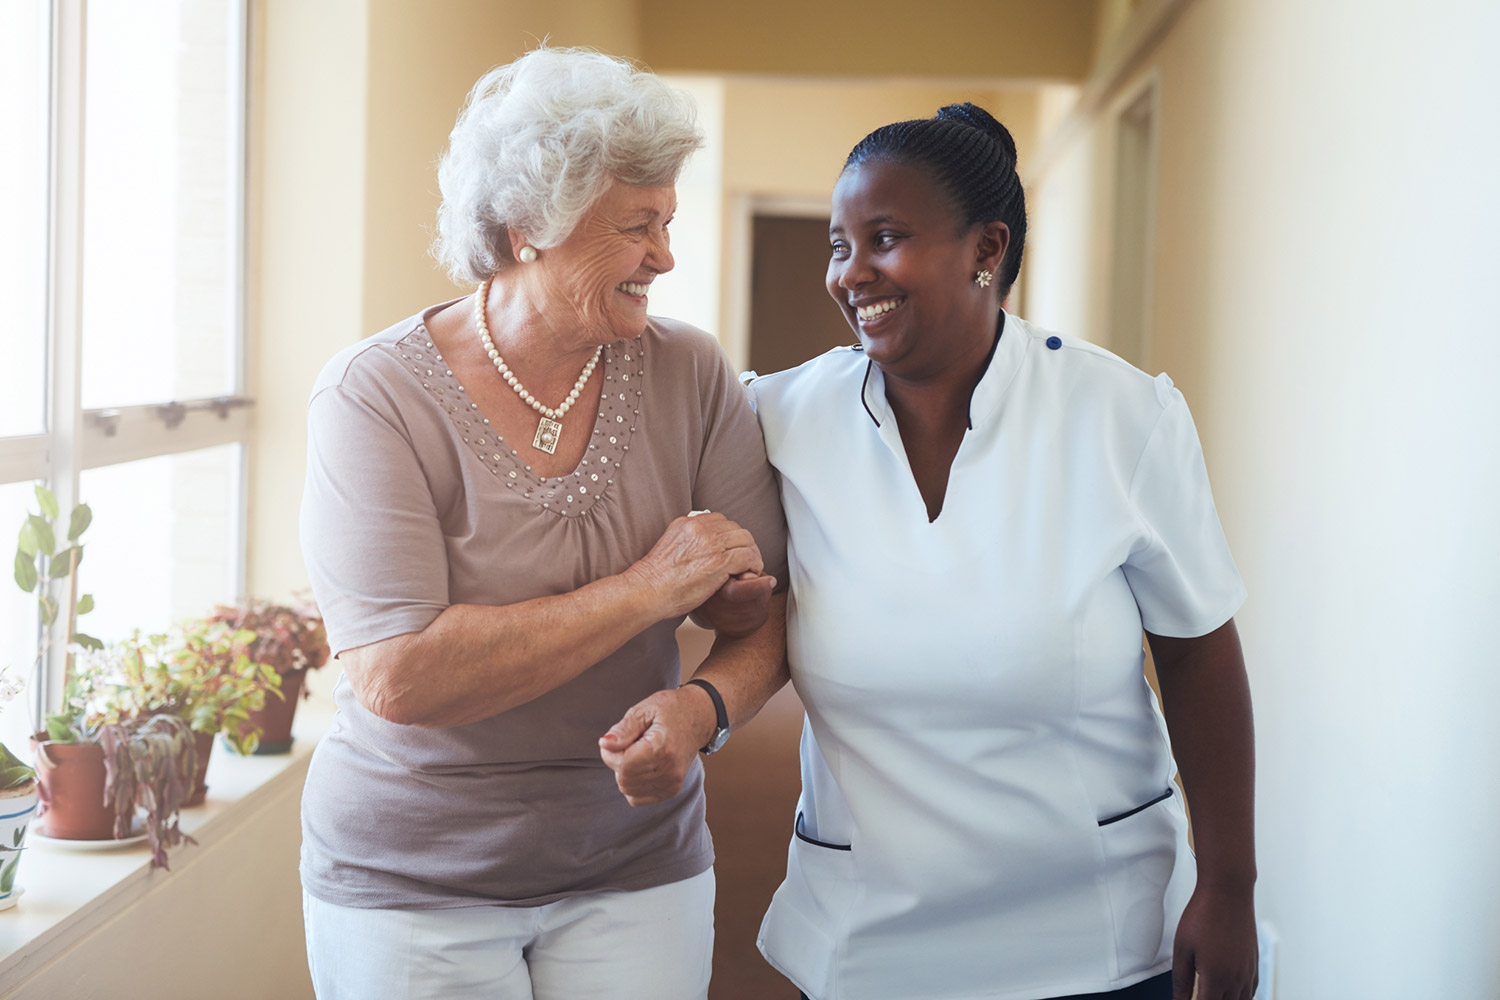 Photo of caregiver and patient walking down a hallway